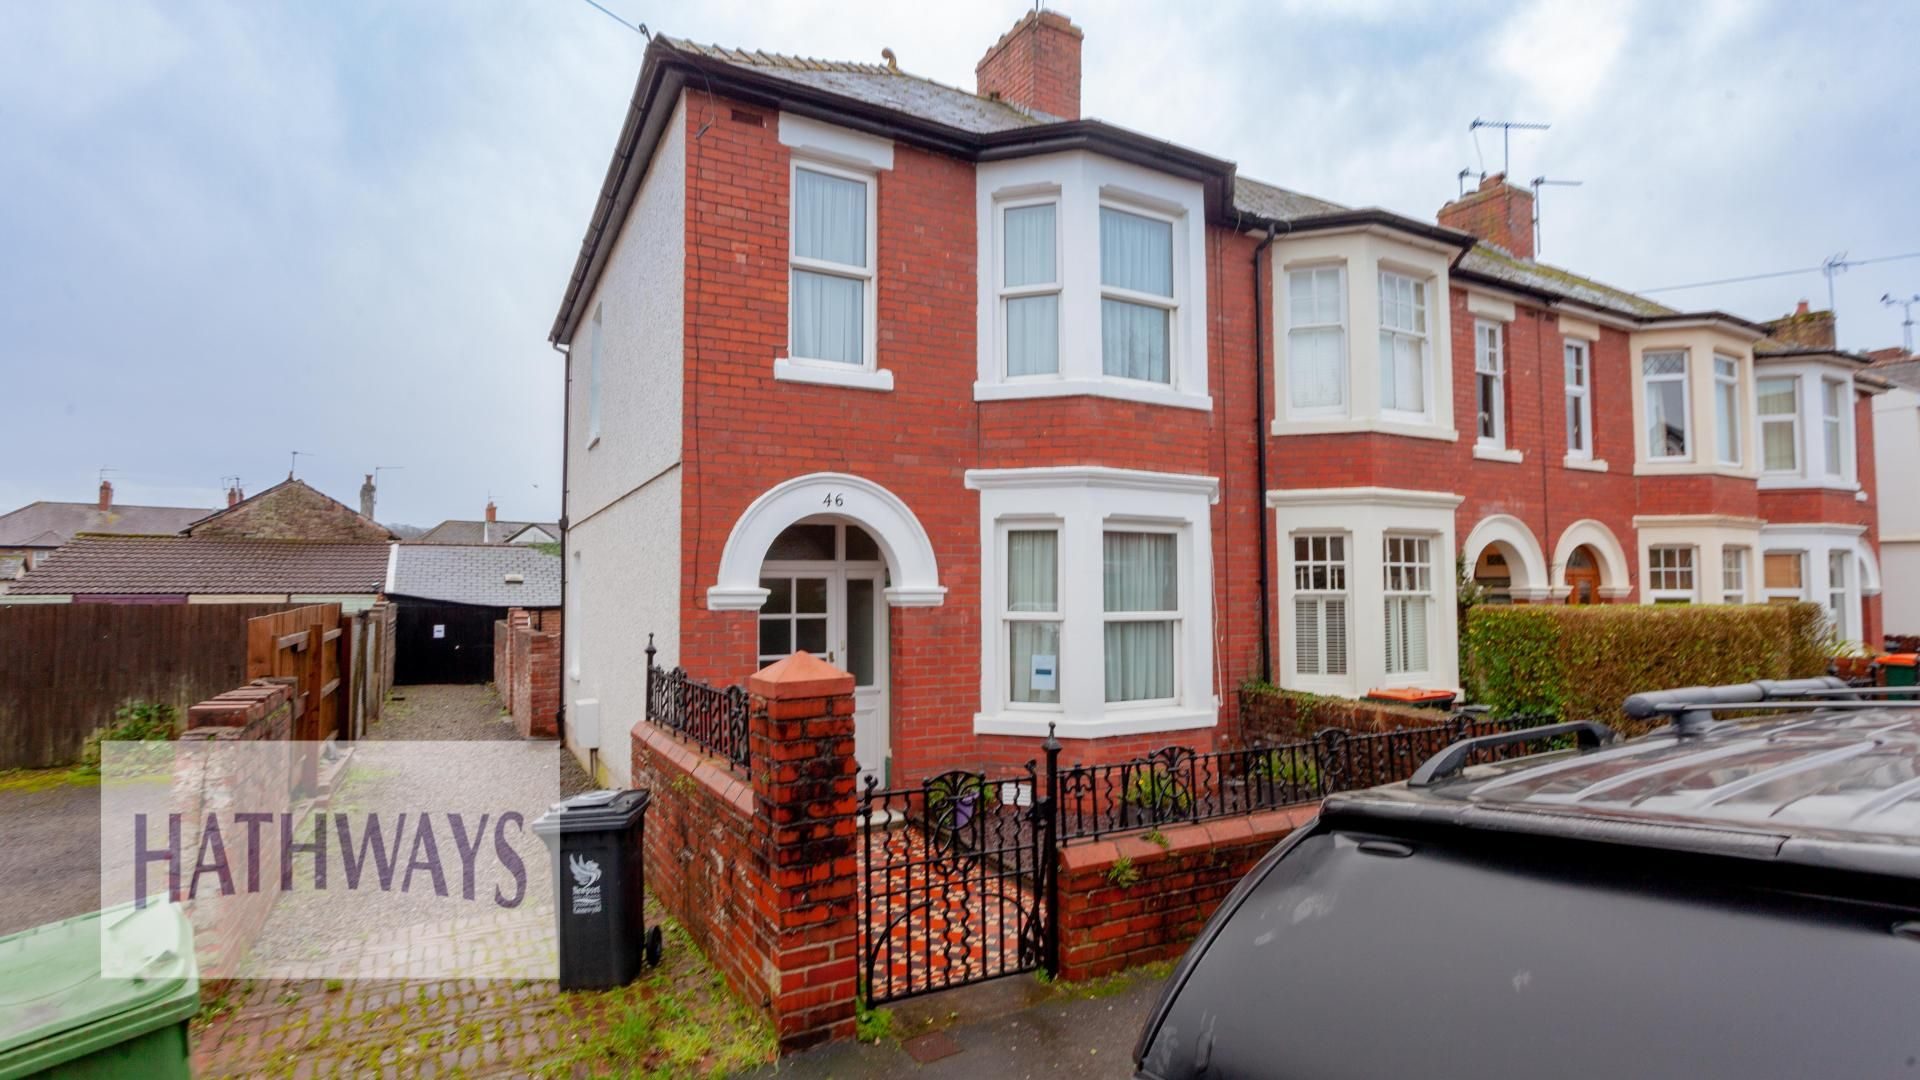 3 bed house for sale in Broadwalk, NP18